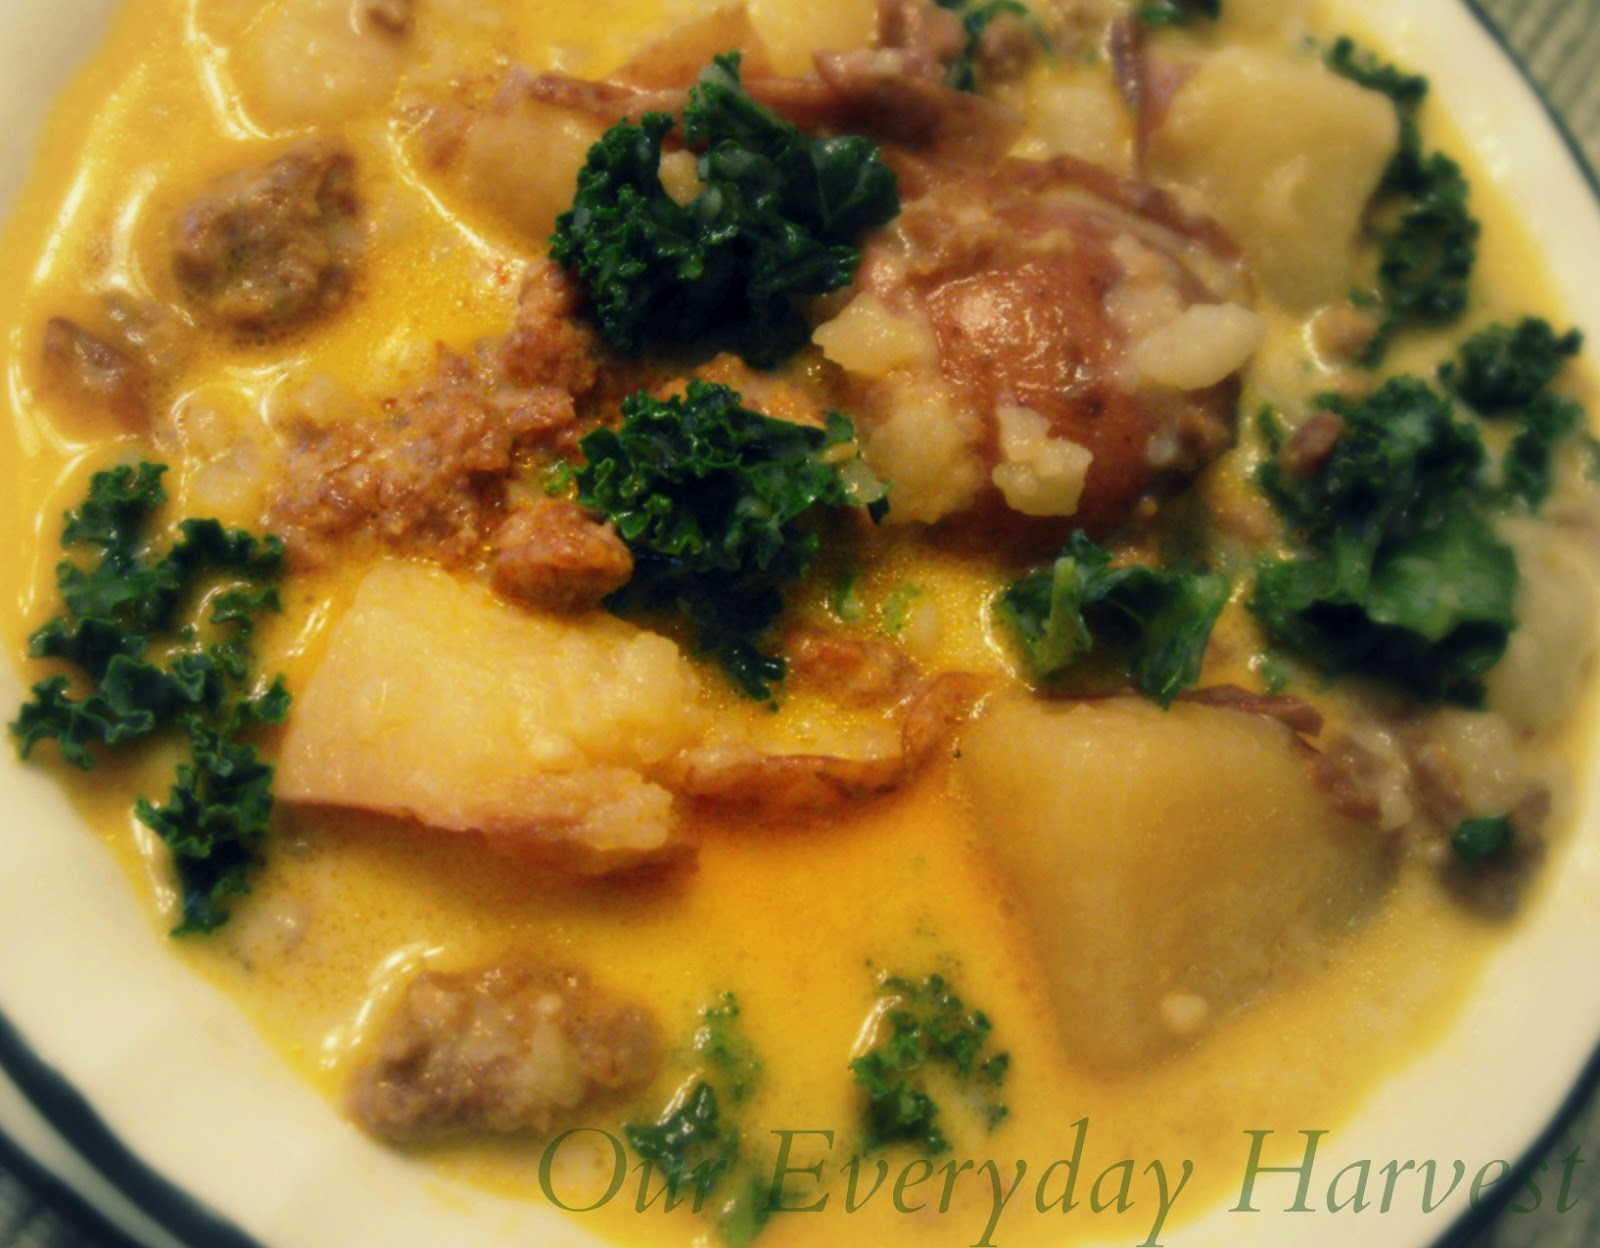 Slow cooker zuppa toscana just like olive garden crock - Olive garden zuppa toscana crock pot ...